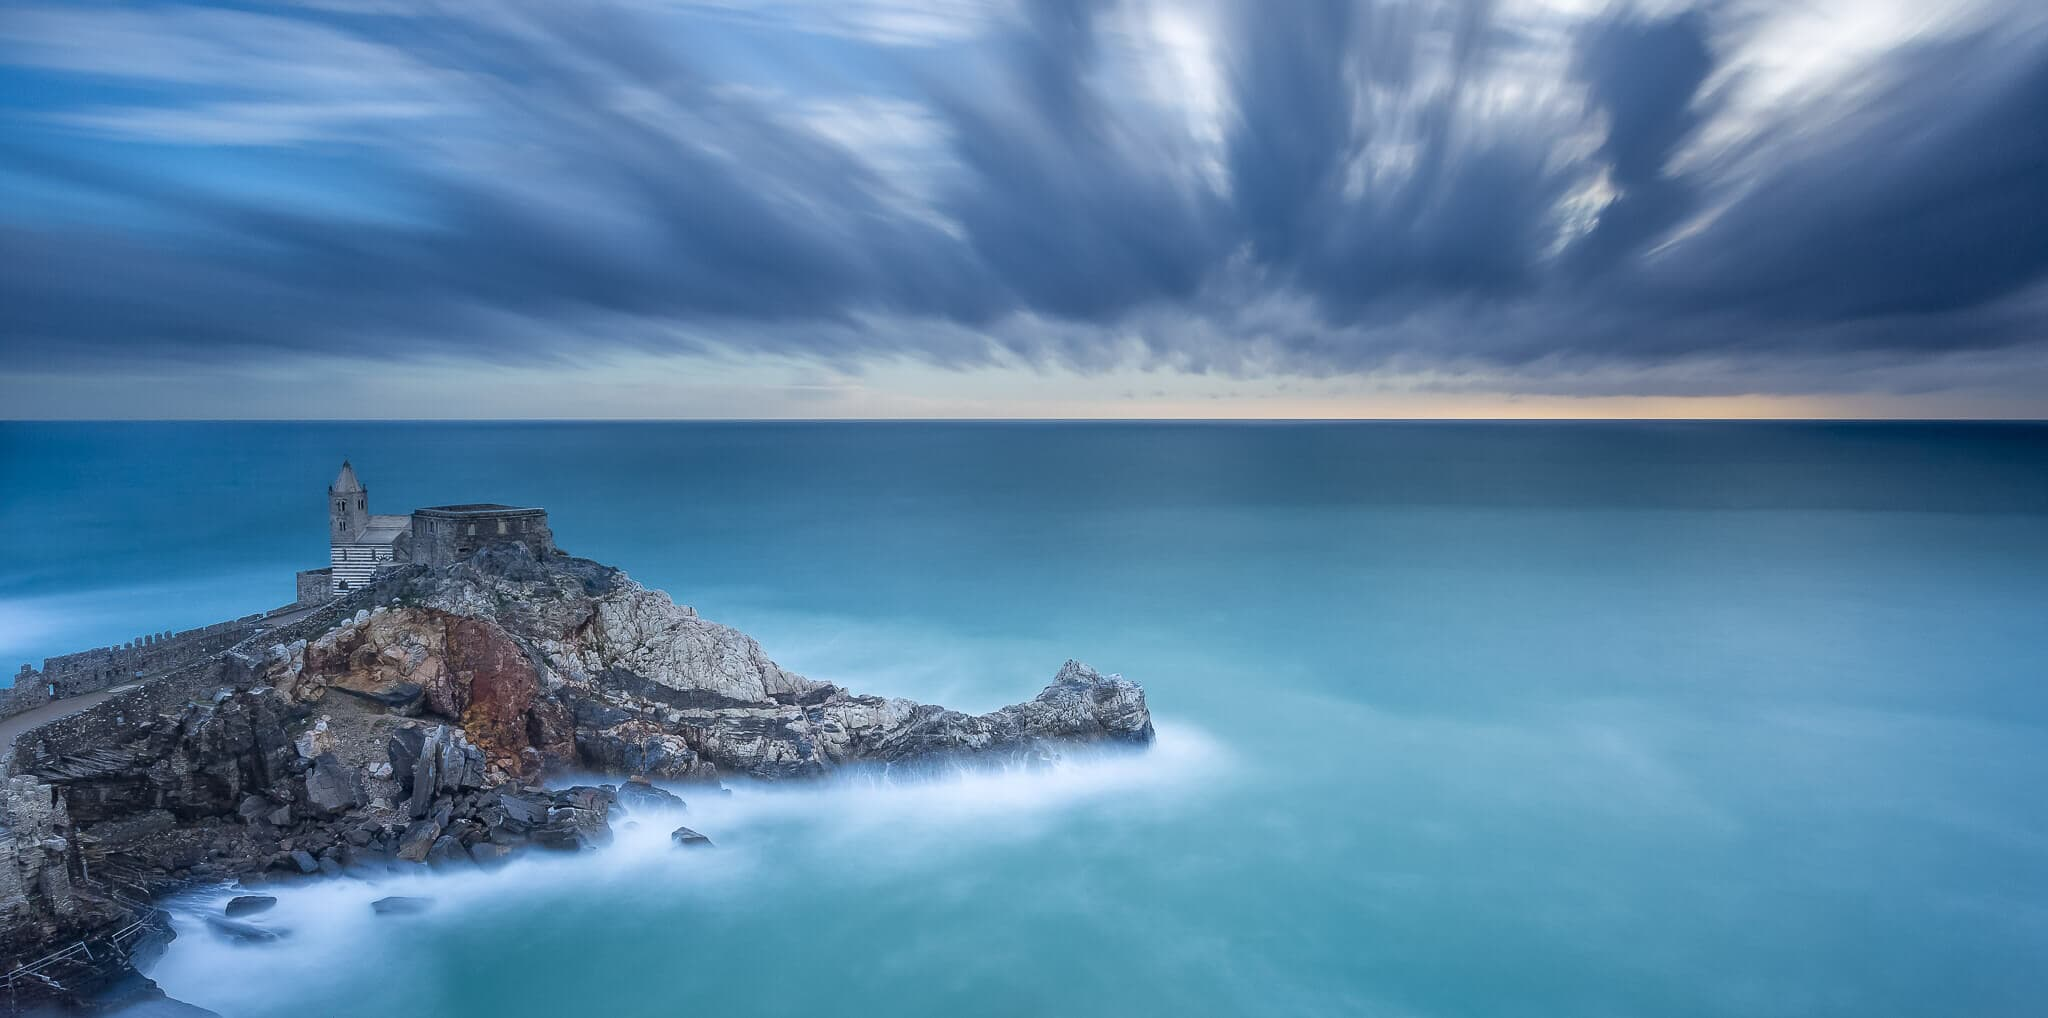 Francesco Gola Seascape Long Exposure Photography Website FineArt Prints Workshops Blog Landscape